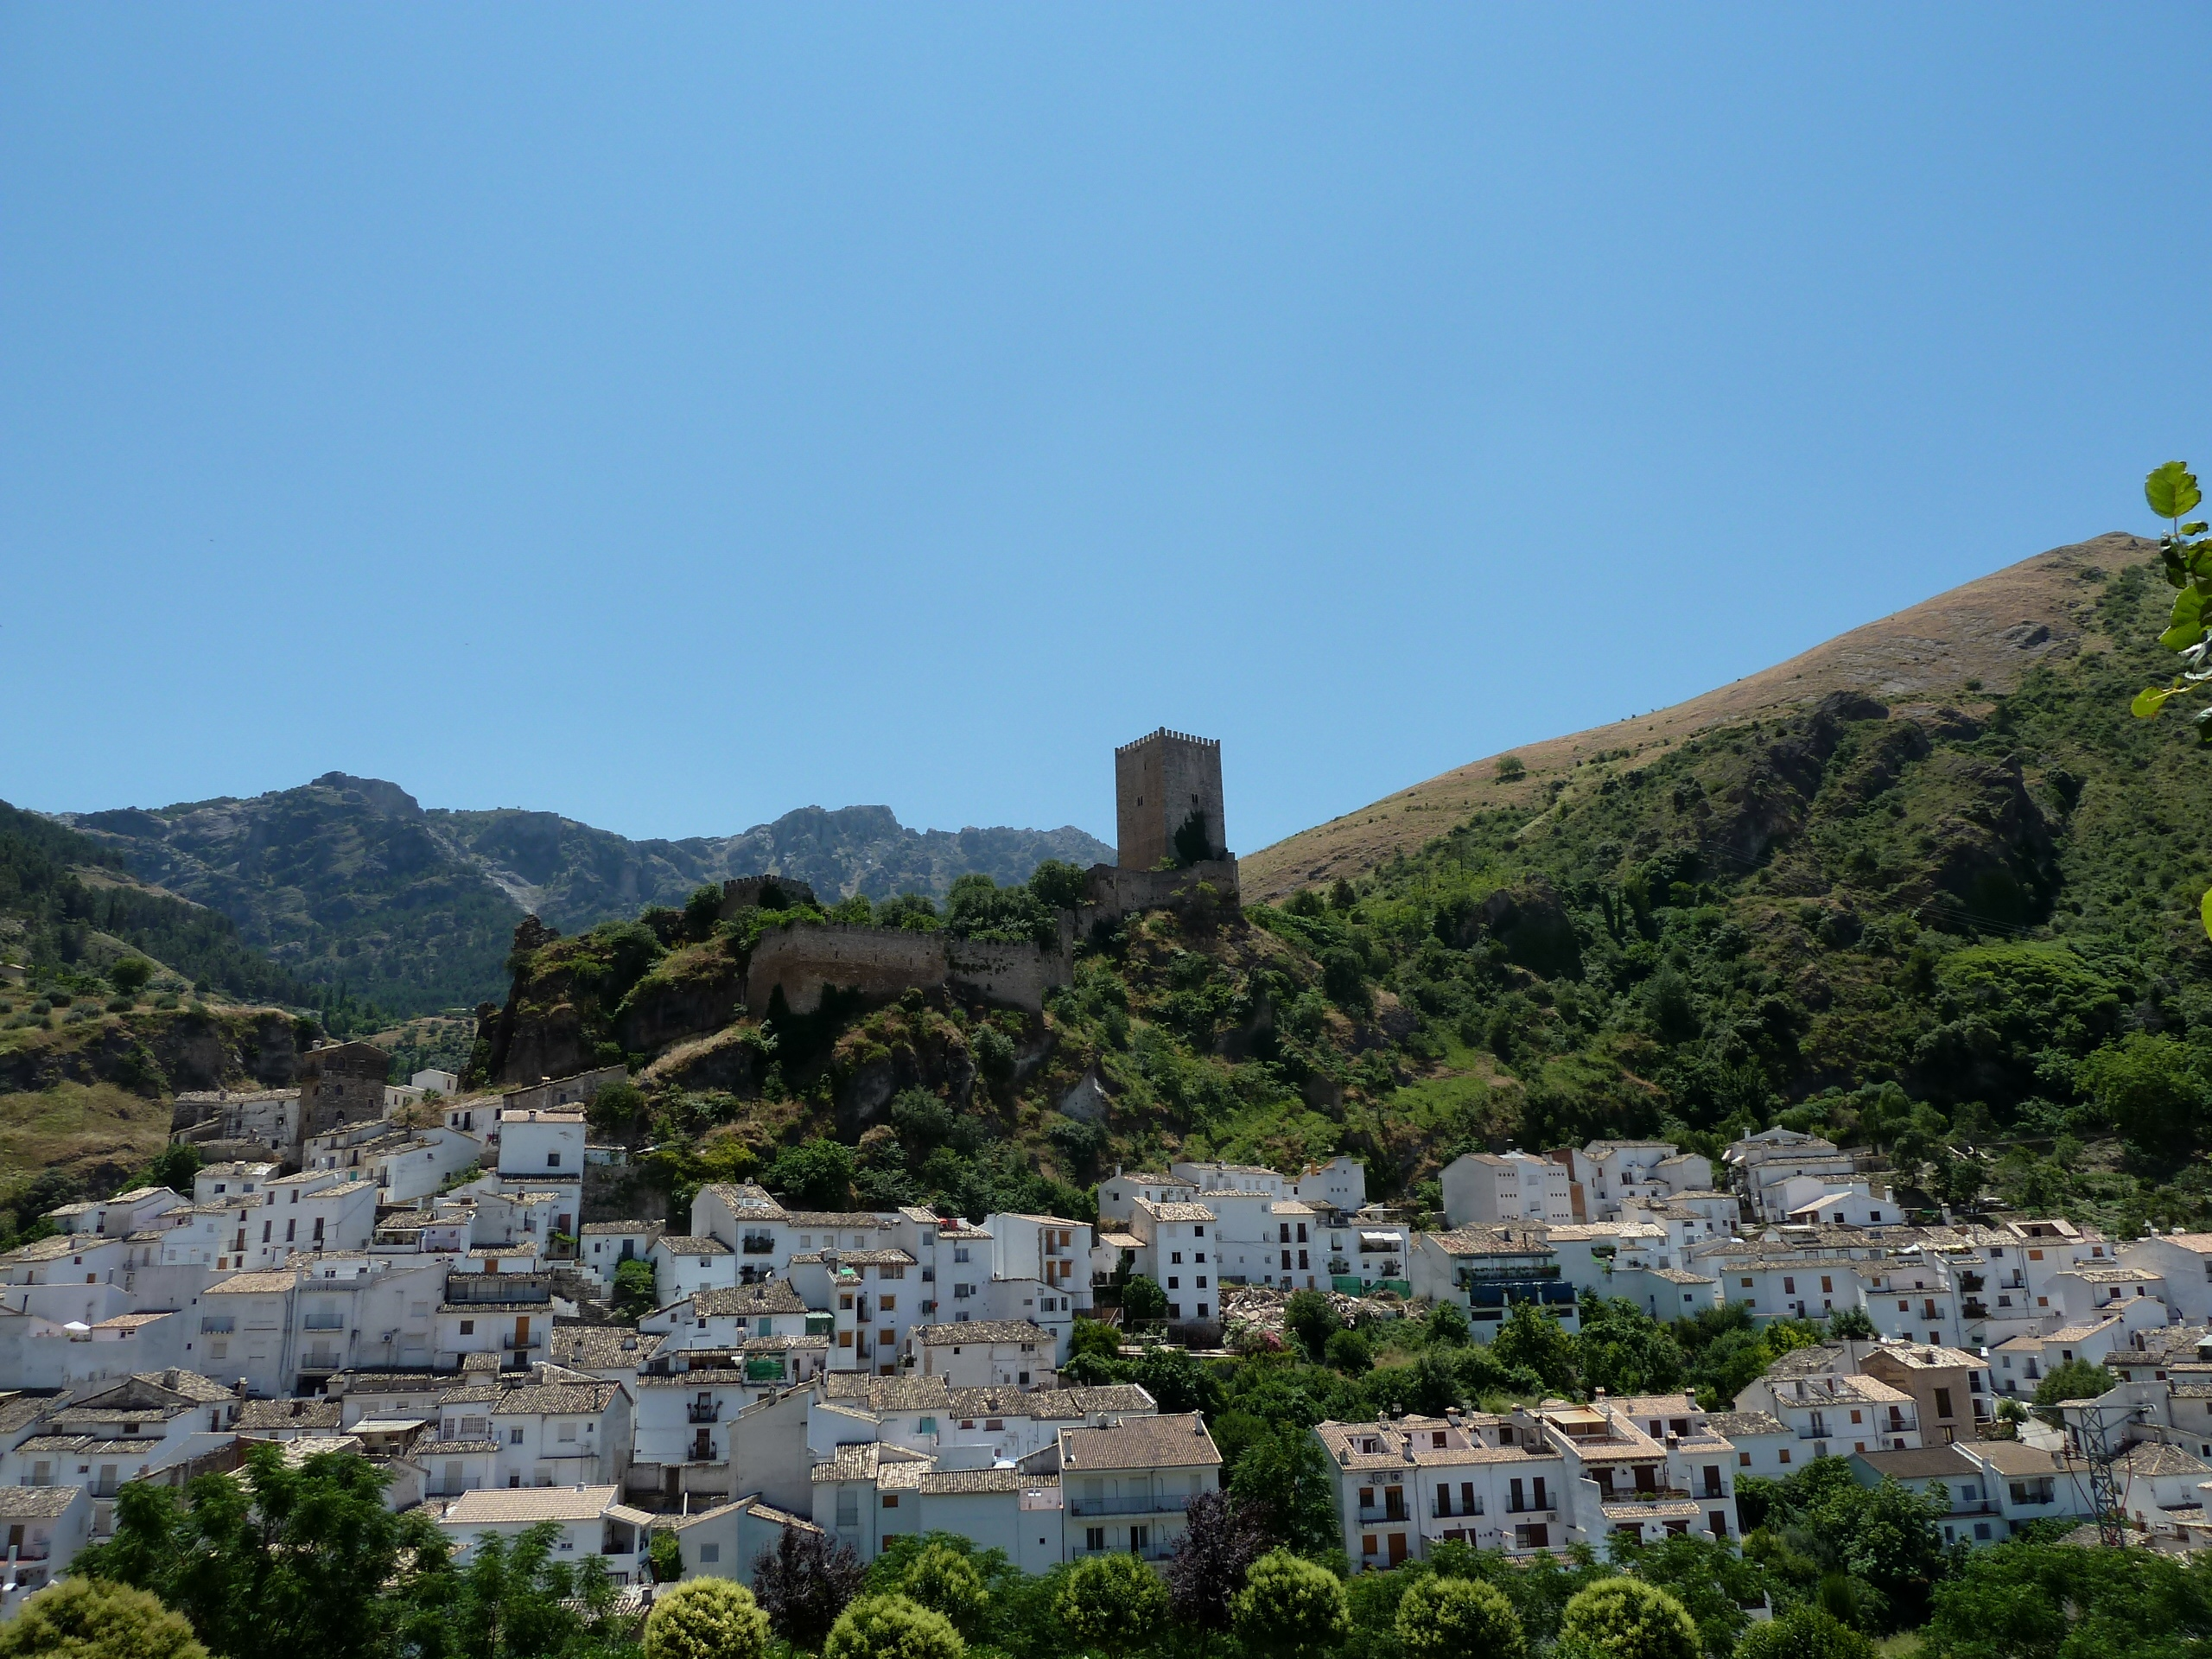 Cazorla_old_town_Cazorla_Natural_Park_www.andrewforbes.com